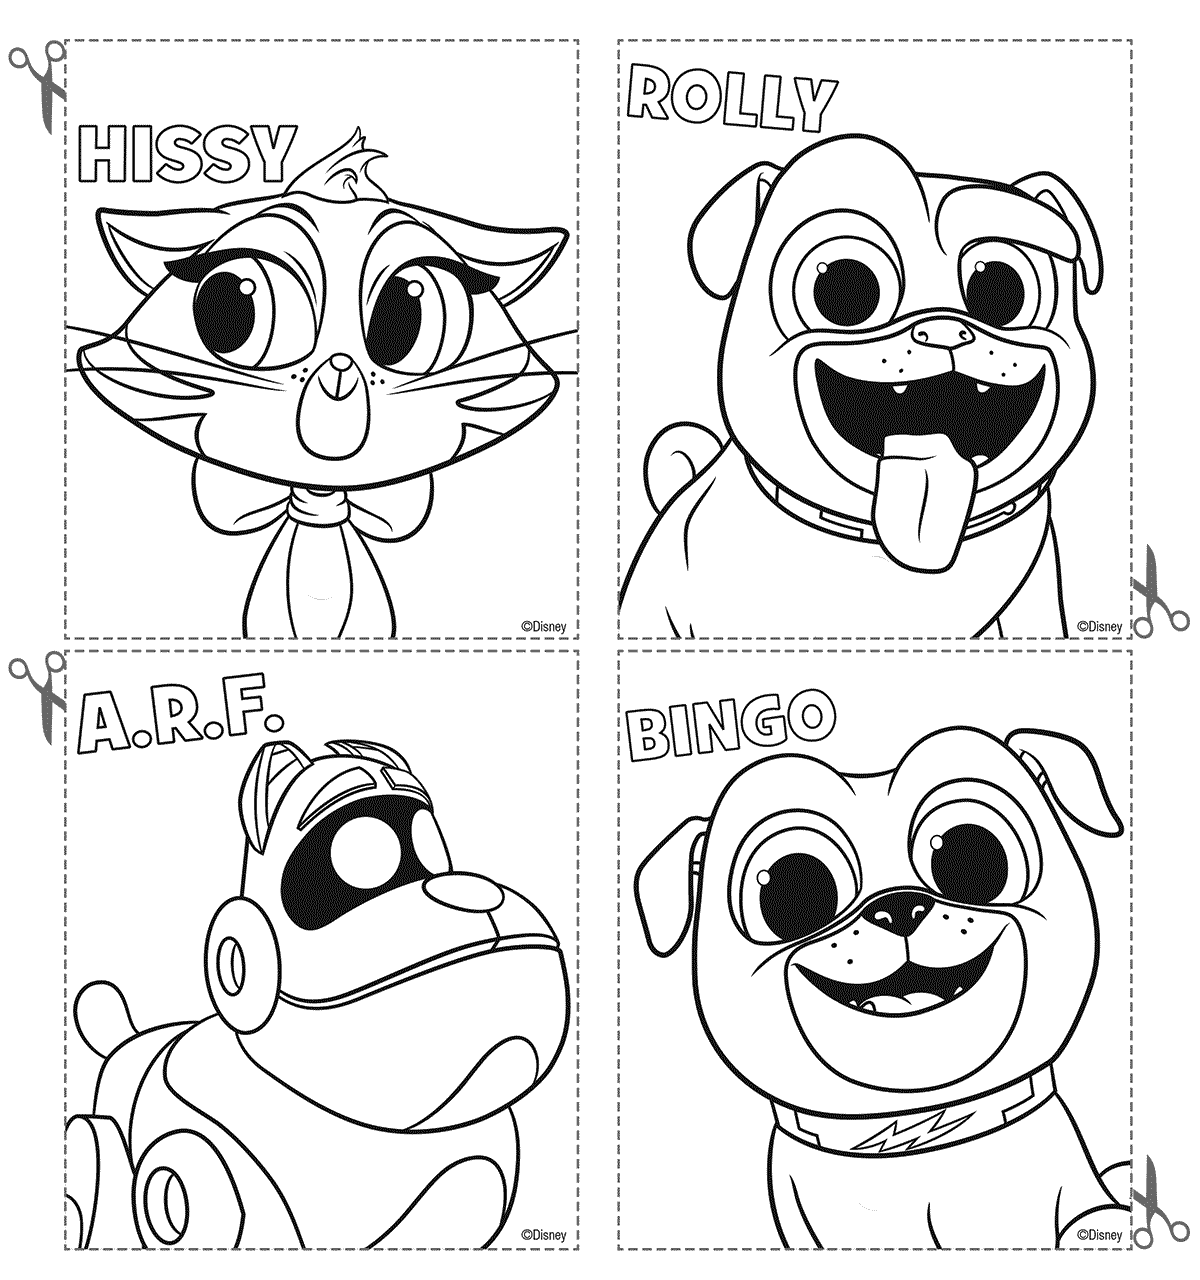 coloring puppy dog pals cute puppy dog pals coloring page dogs and puppies puppy dog coloring pals